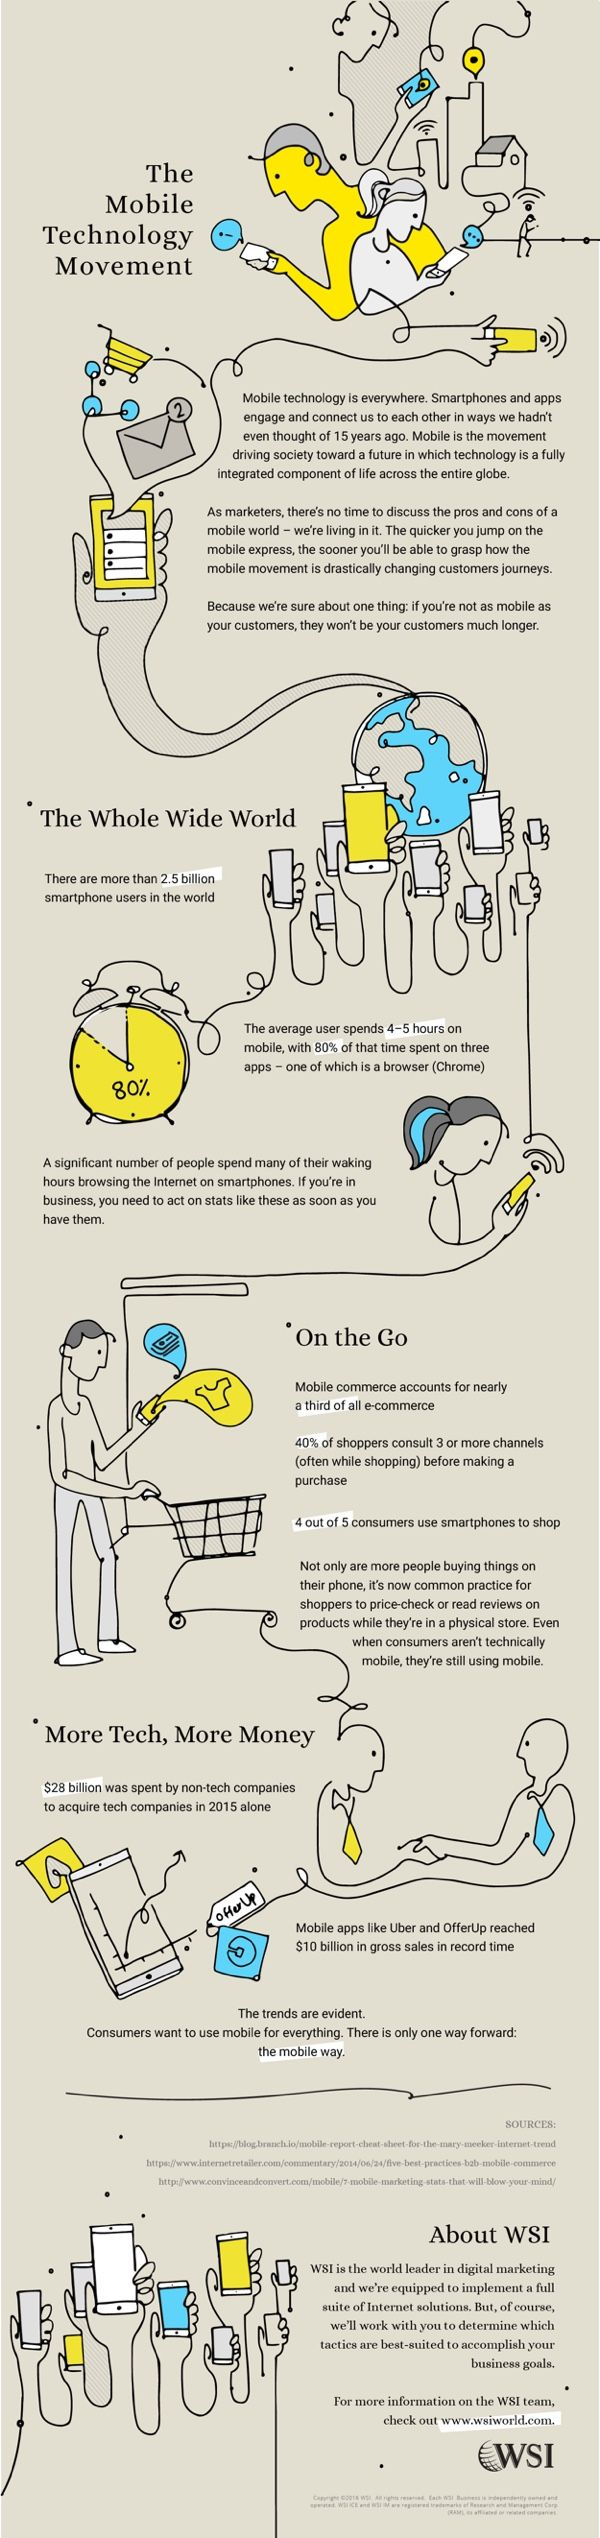 The Mobile Technology Movement #Infographic #Mobile #Technology